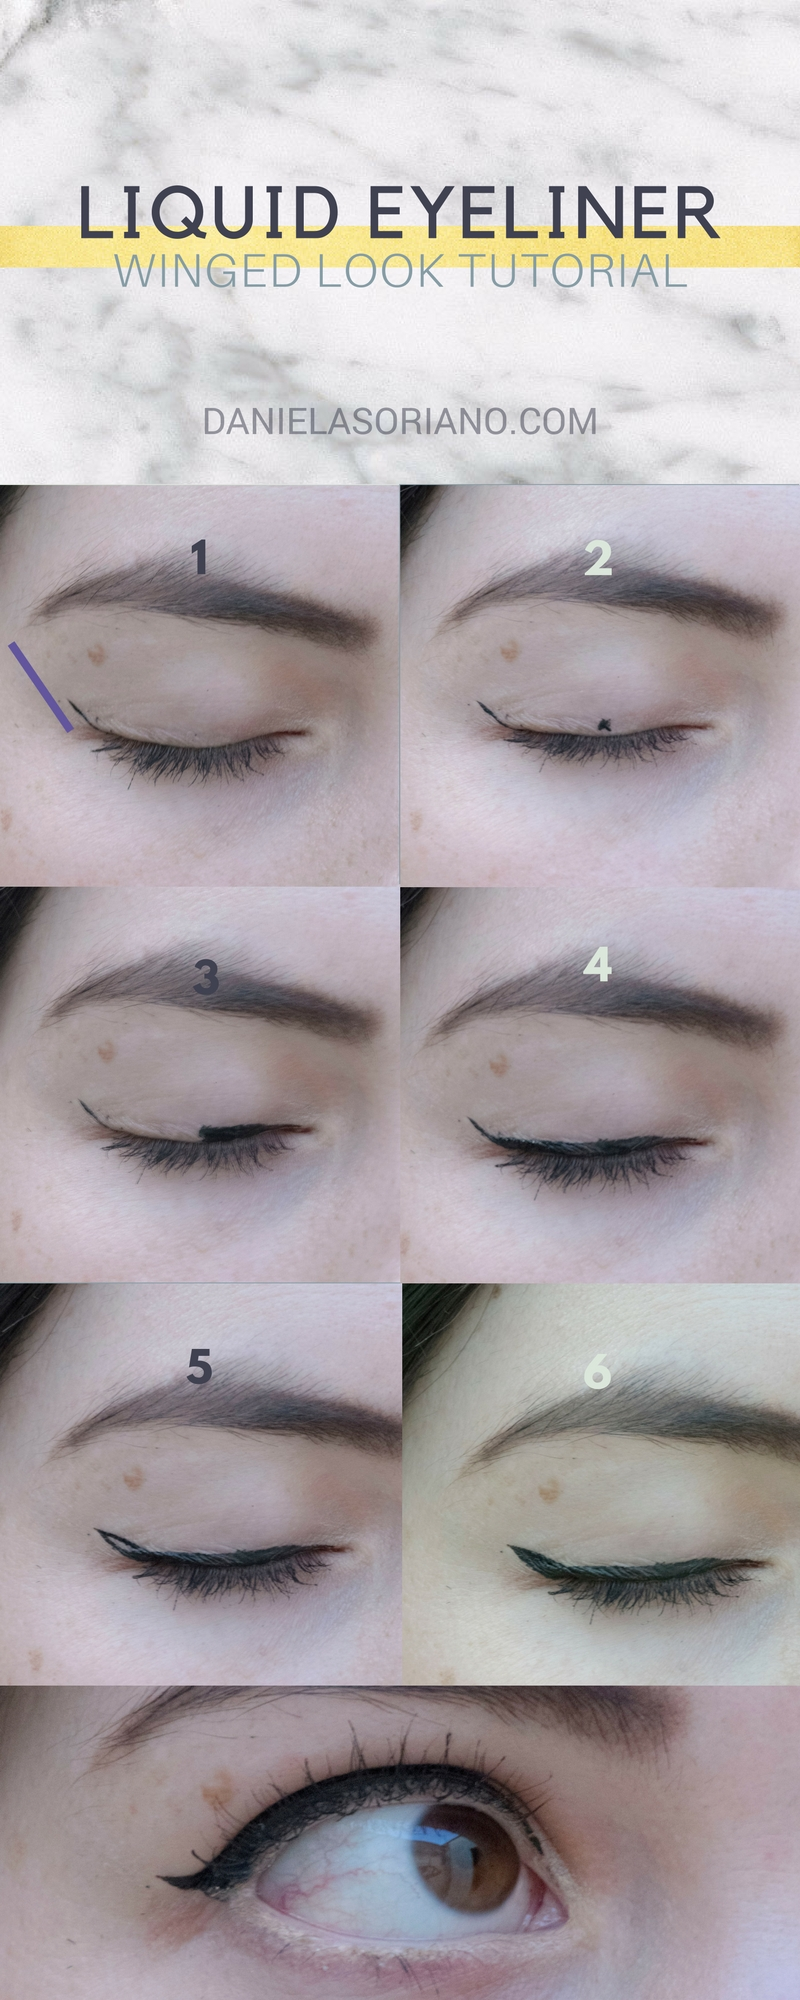 winged-eyeliner-tutorial